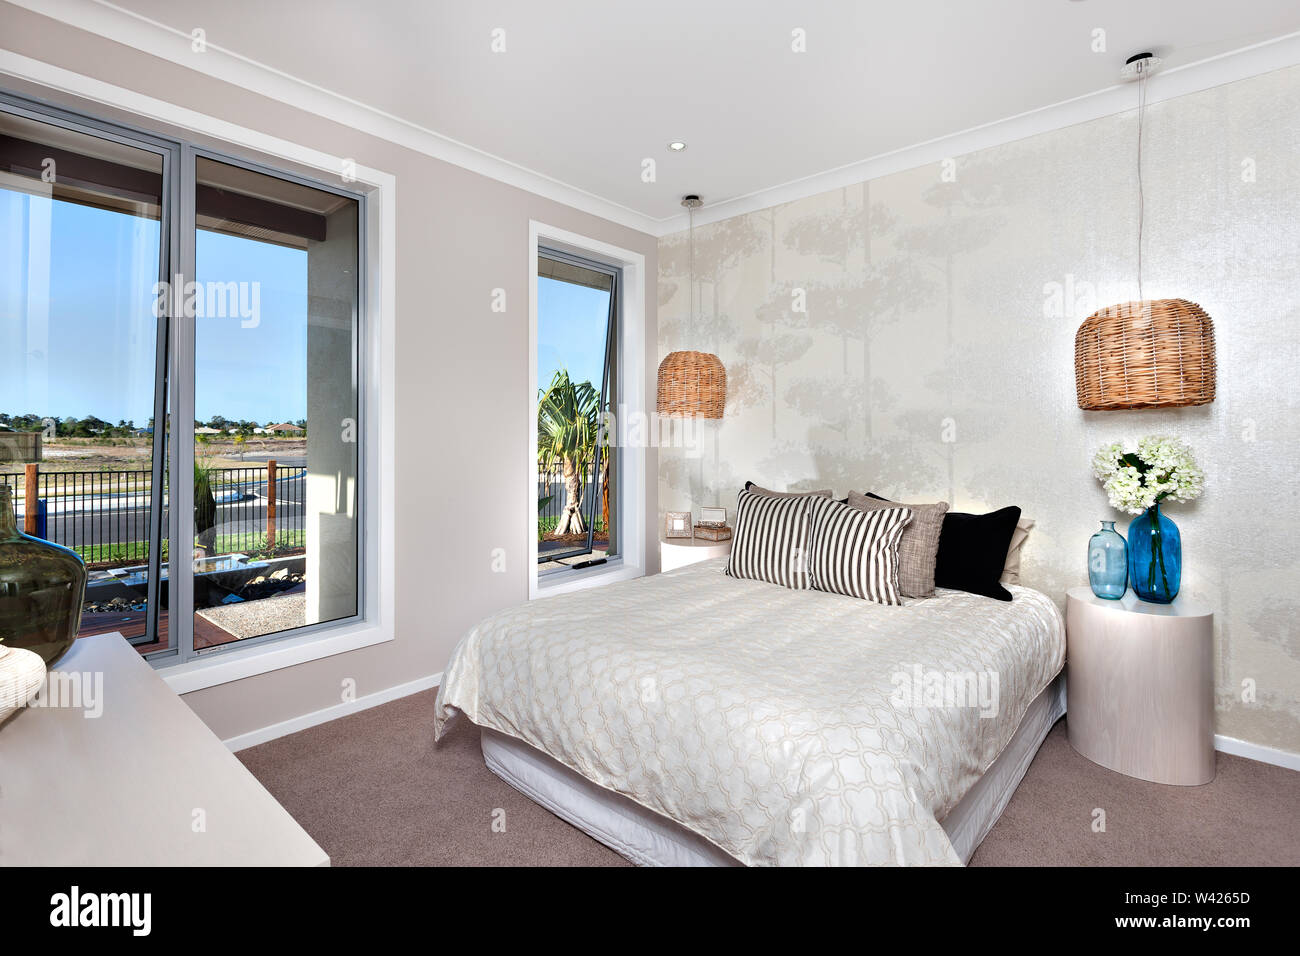 Bedroom including hanging lamp cover with rattan filter or ...